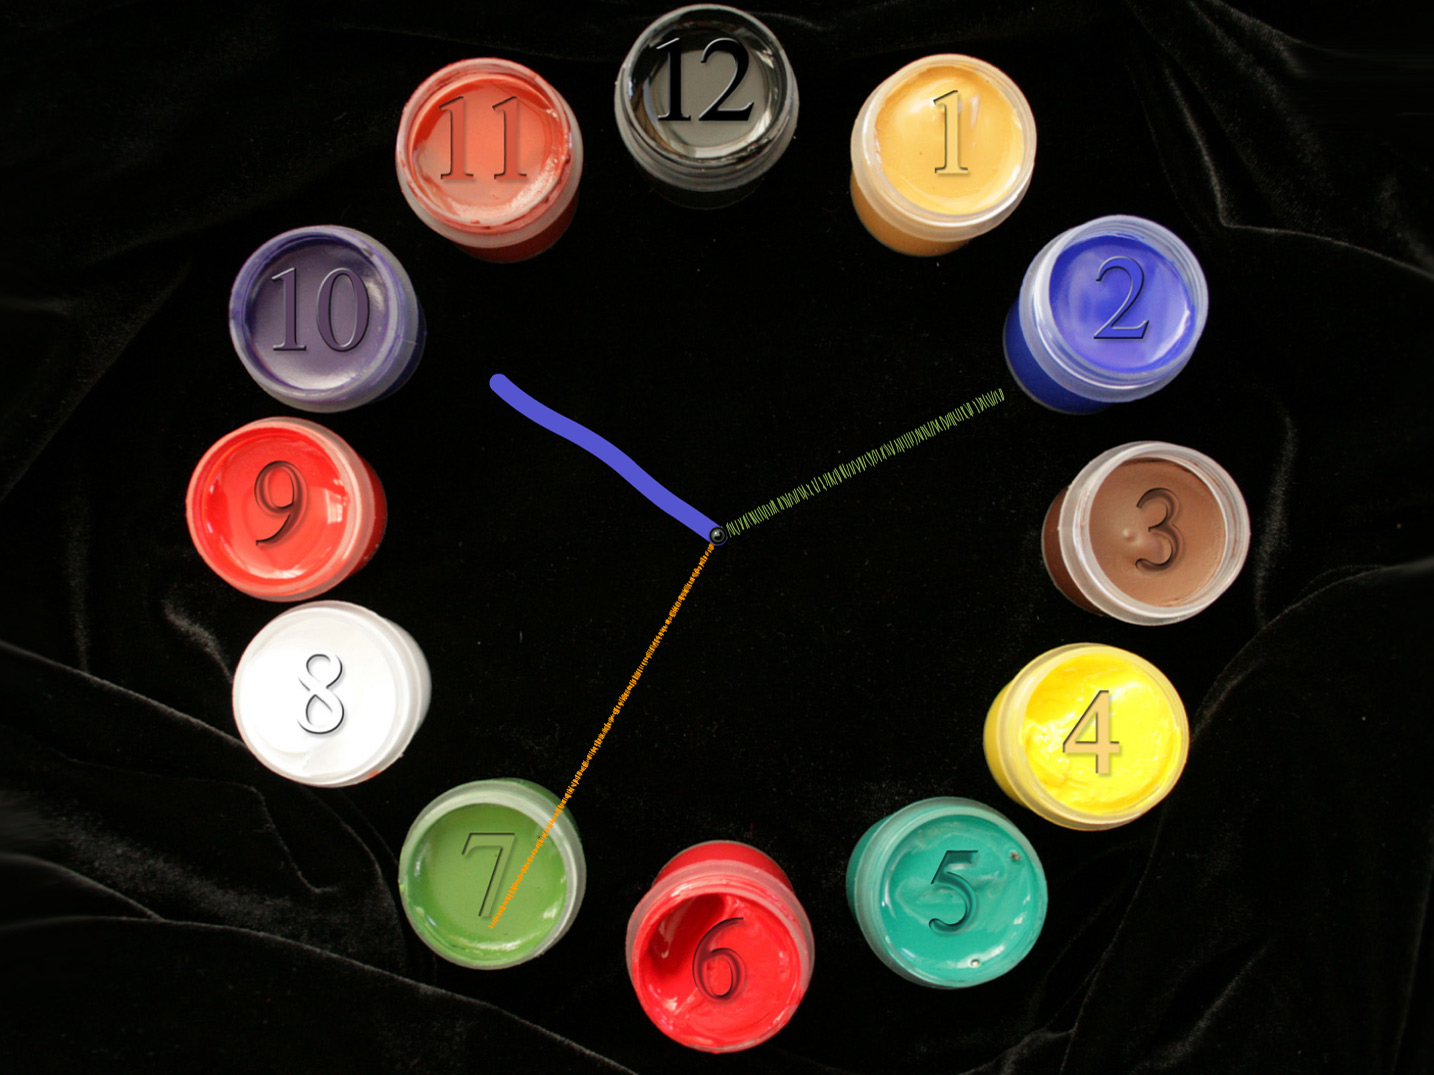 Paintbrush Clock screensaver